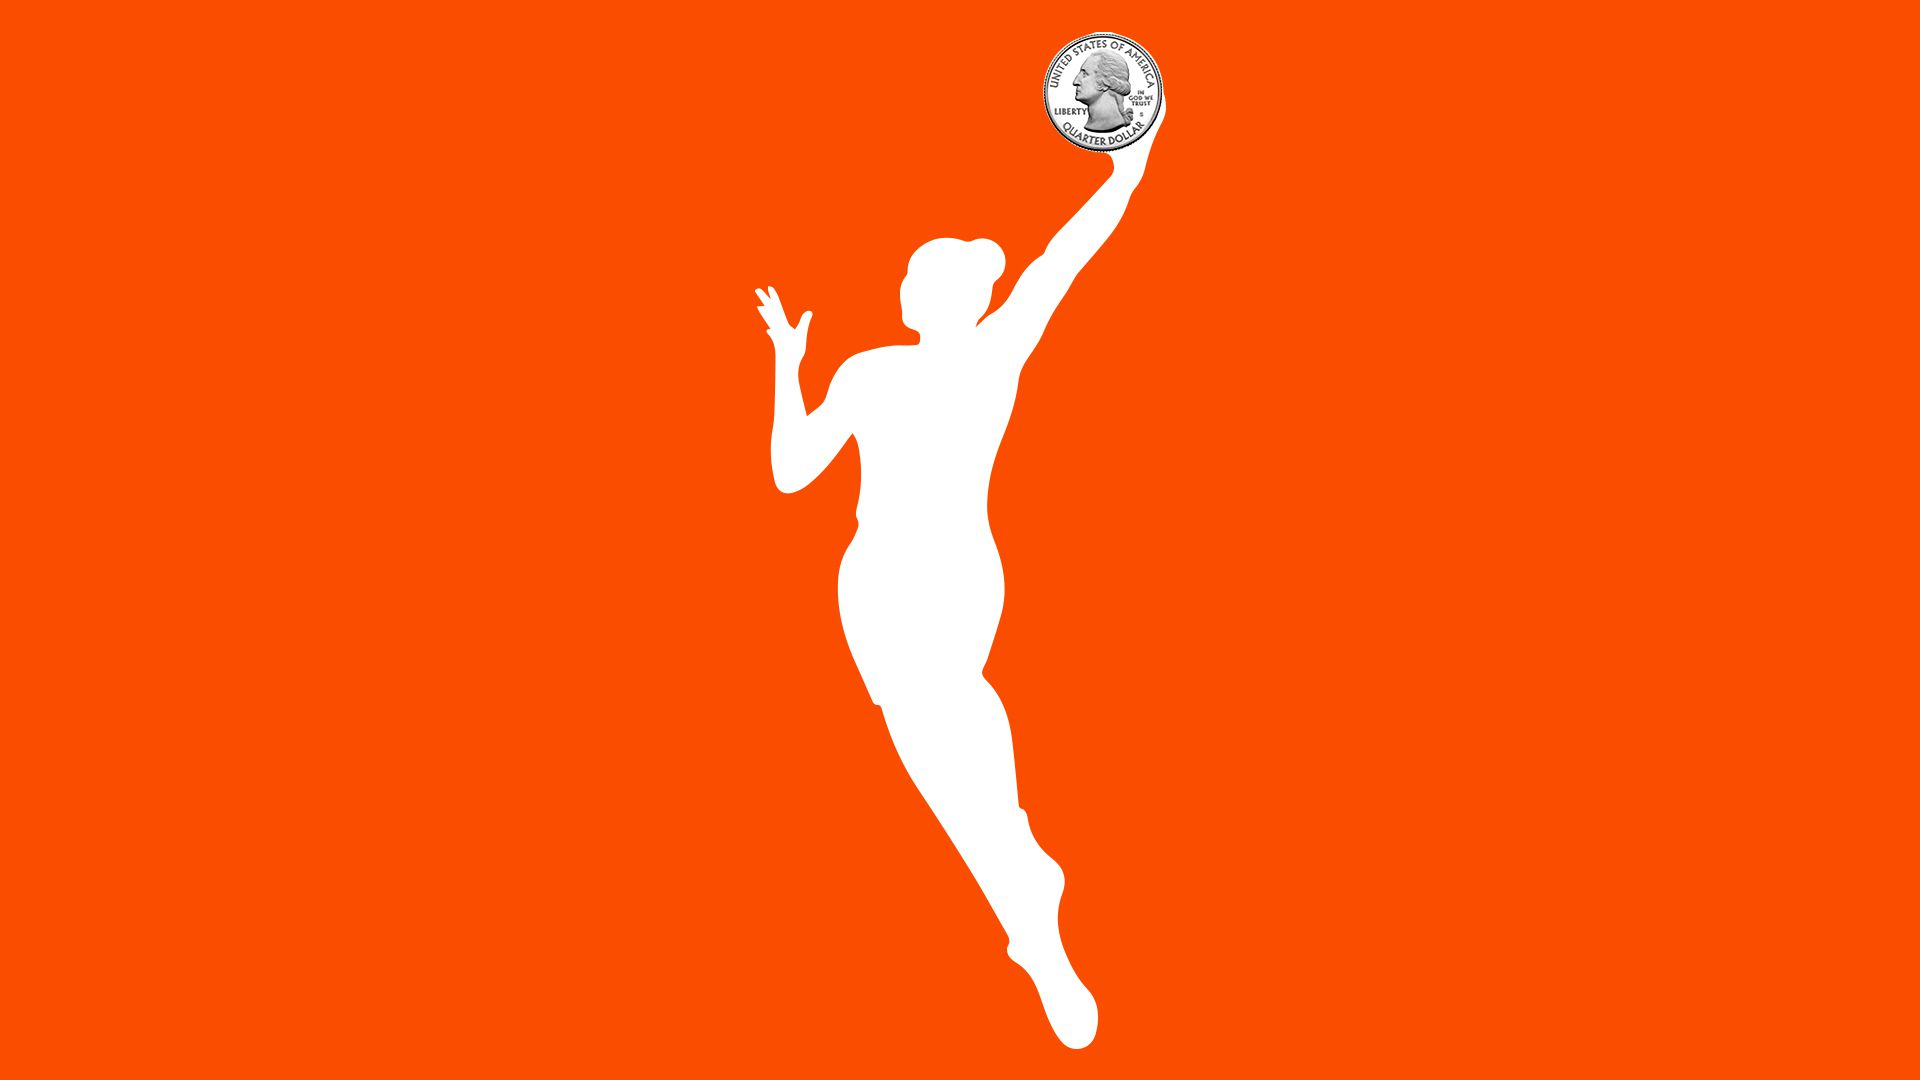 WNBA logo with a quarter in place of the basketball